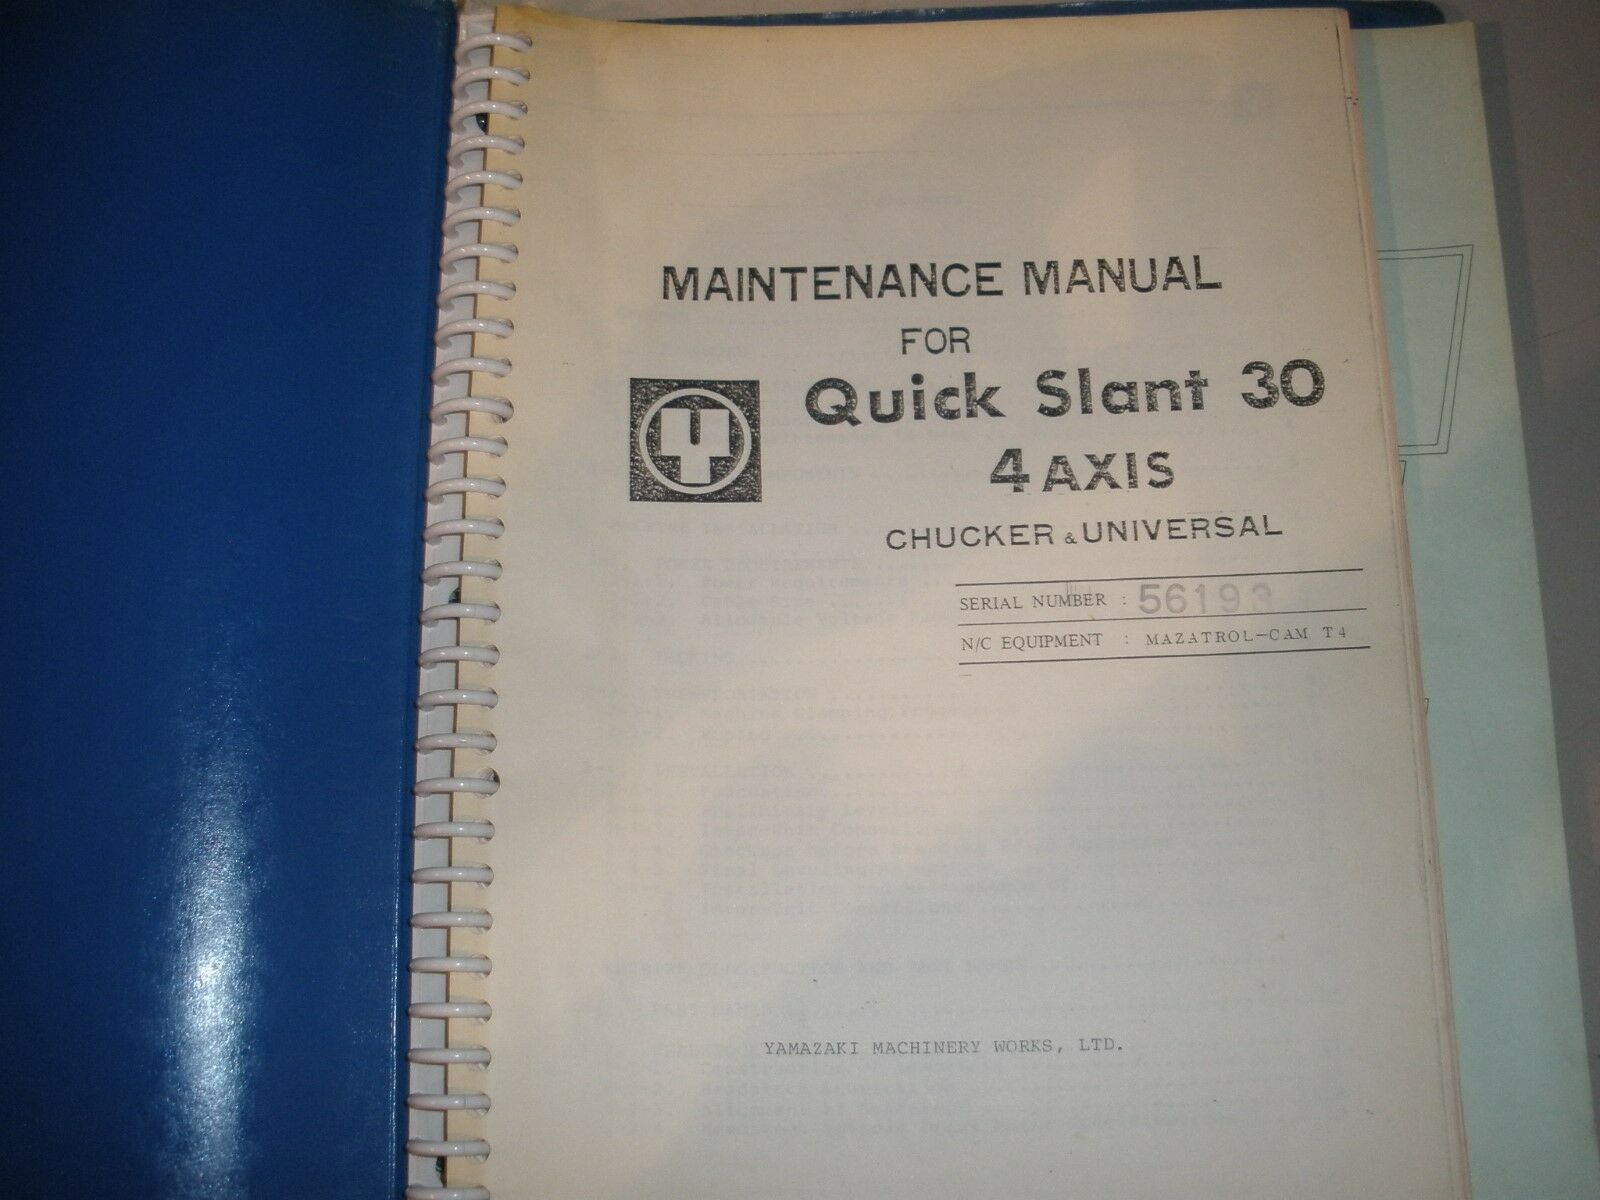 Mazak QS30 CNC Lathe Maintenance Manual 1 of 1Only 1 available ...